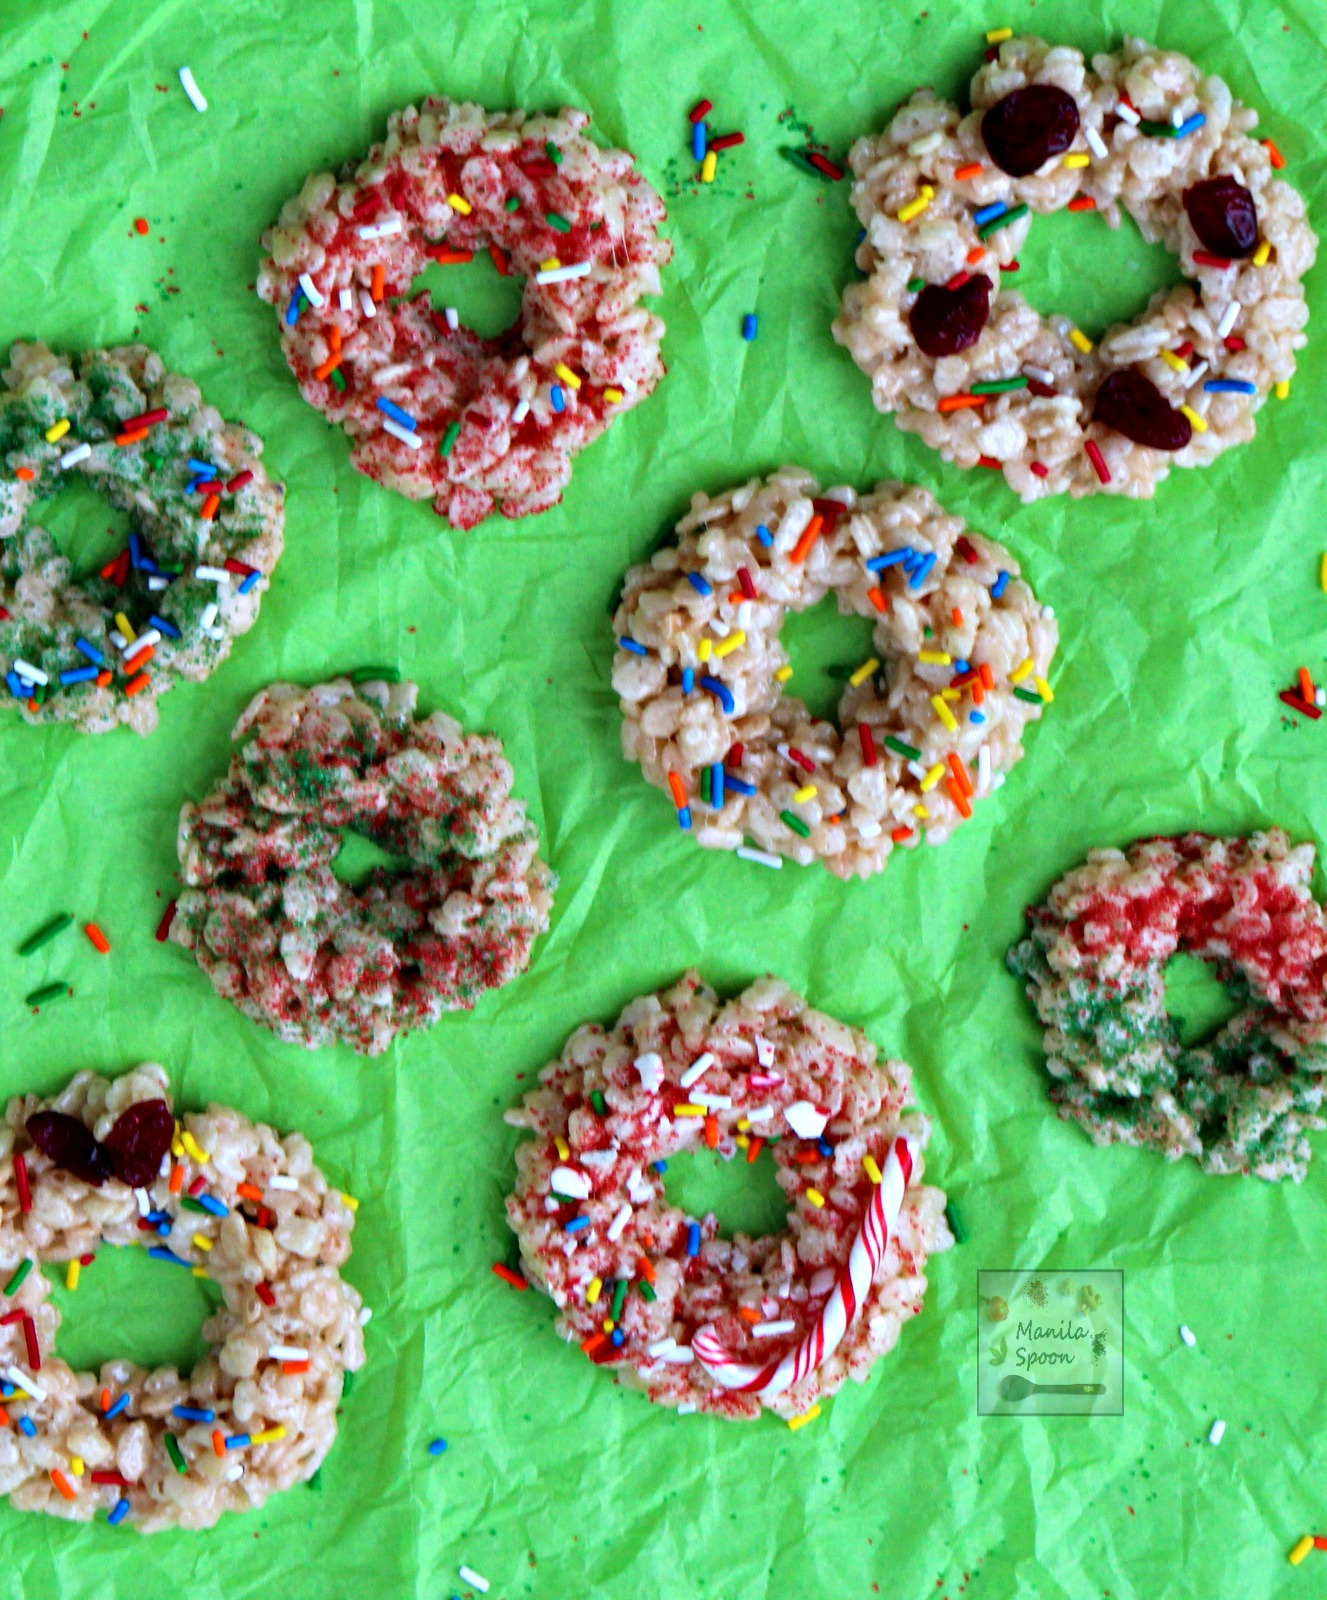 Have fun with your kids this Christmas by making these quick, easy and delicious NO BAKE Christmas Rice Krispie Wreaths. Decorate these festive wreaths with sprinkles, candy canes, fruits, etc....the possibilities are endless! | manilaspoon.com